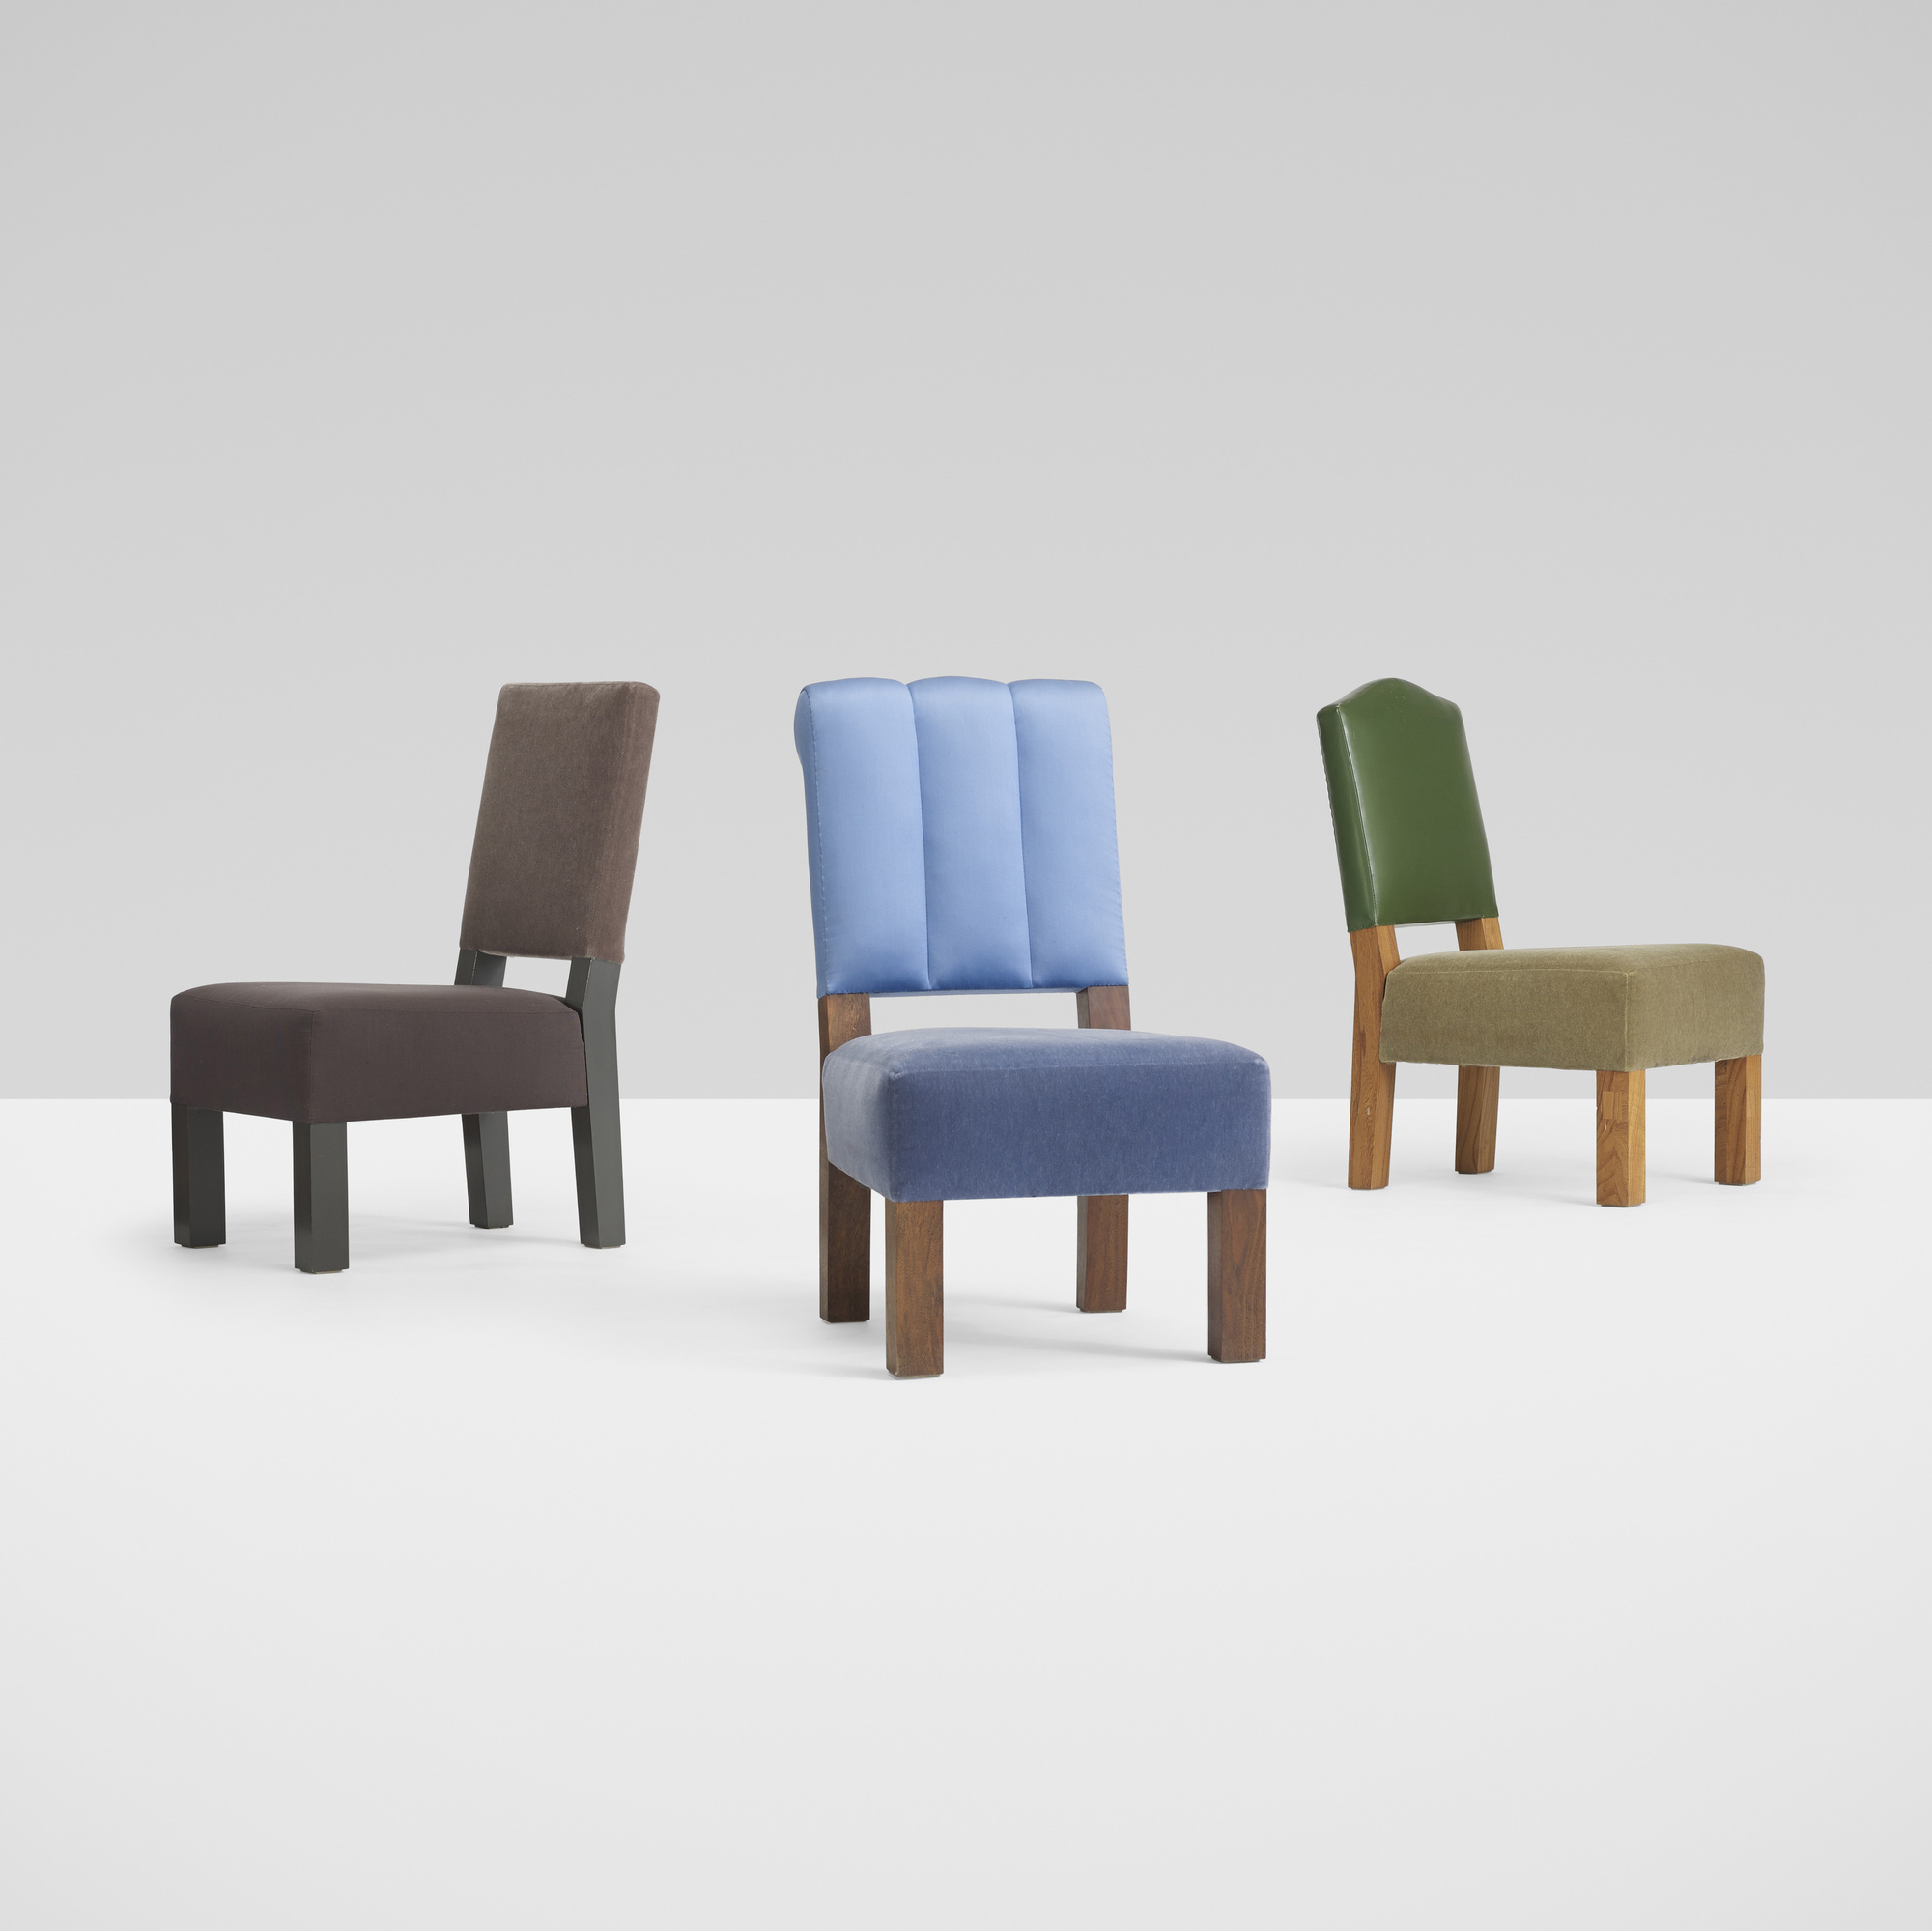 290: Roy McMakin / collection of three chairs for the Young residence, Chicago (2 of 4)